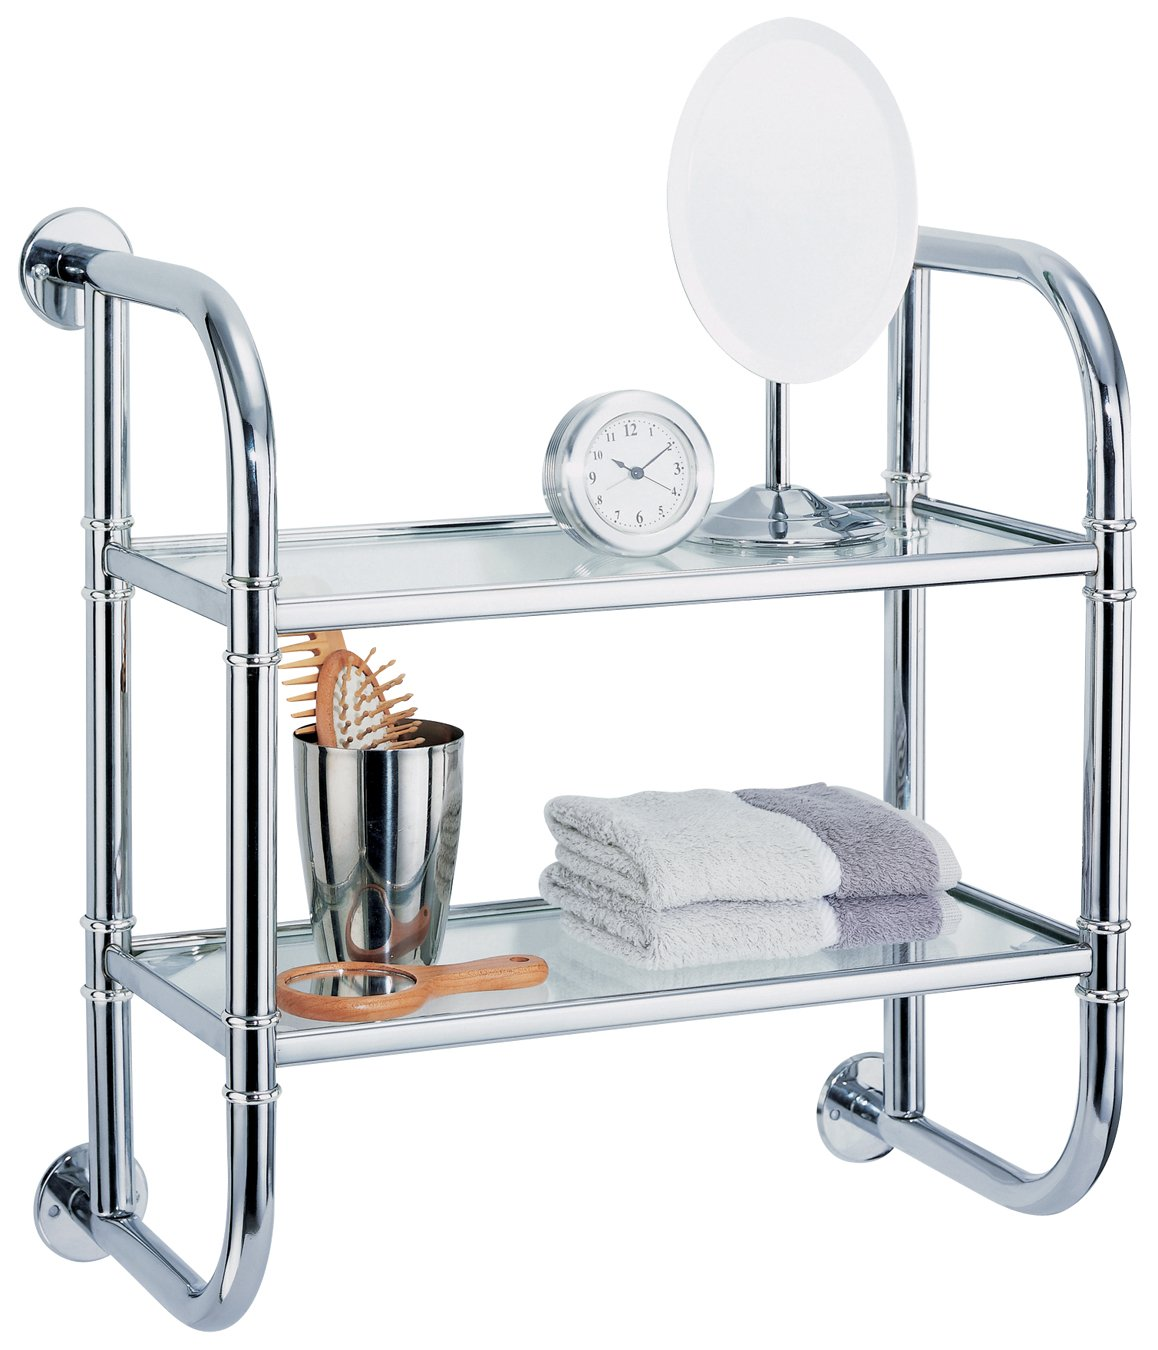 Organize It All 2 Tier Chrome Pipe Mounted Tempered Glass Bathroom Storage Shelf by Organize It All